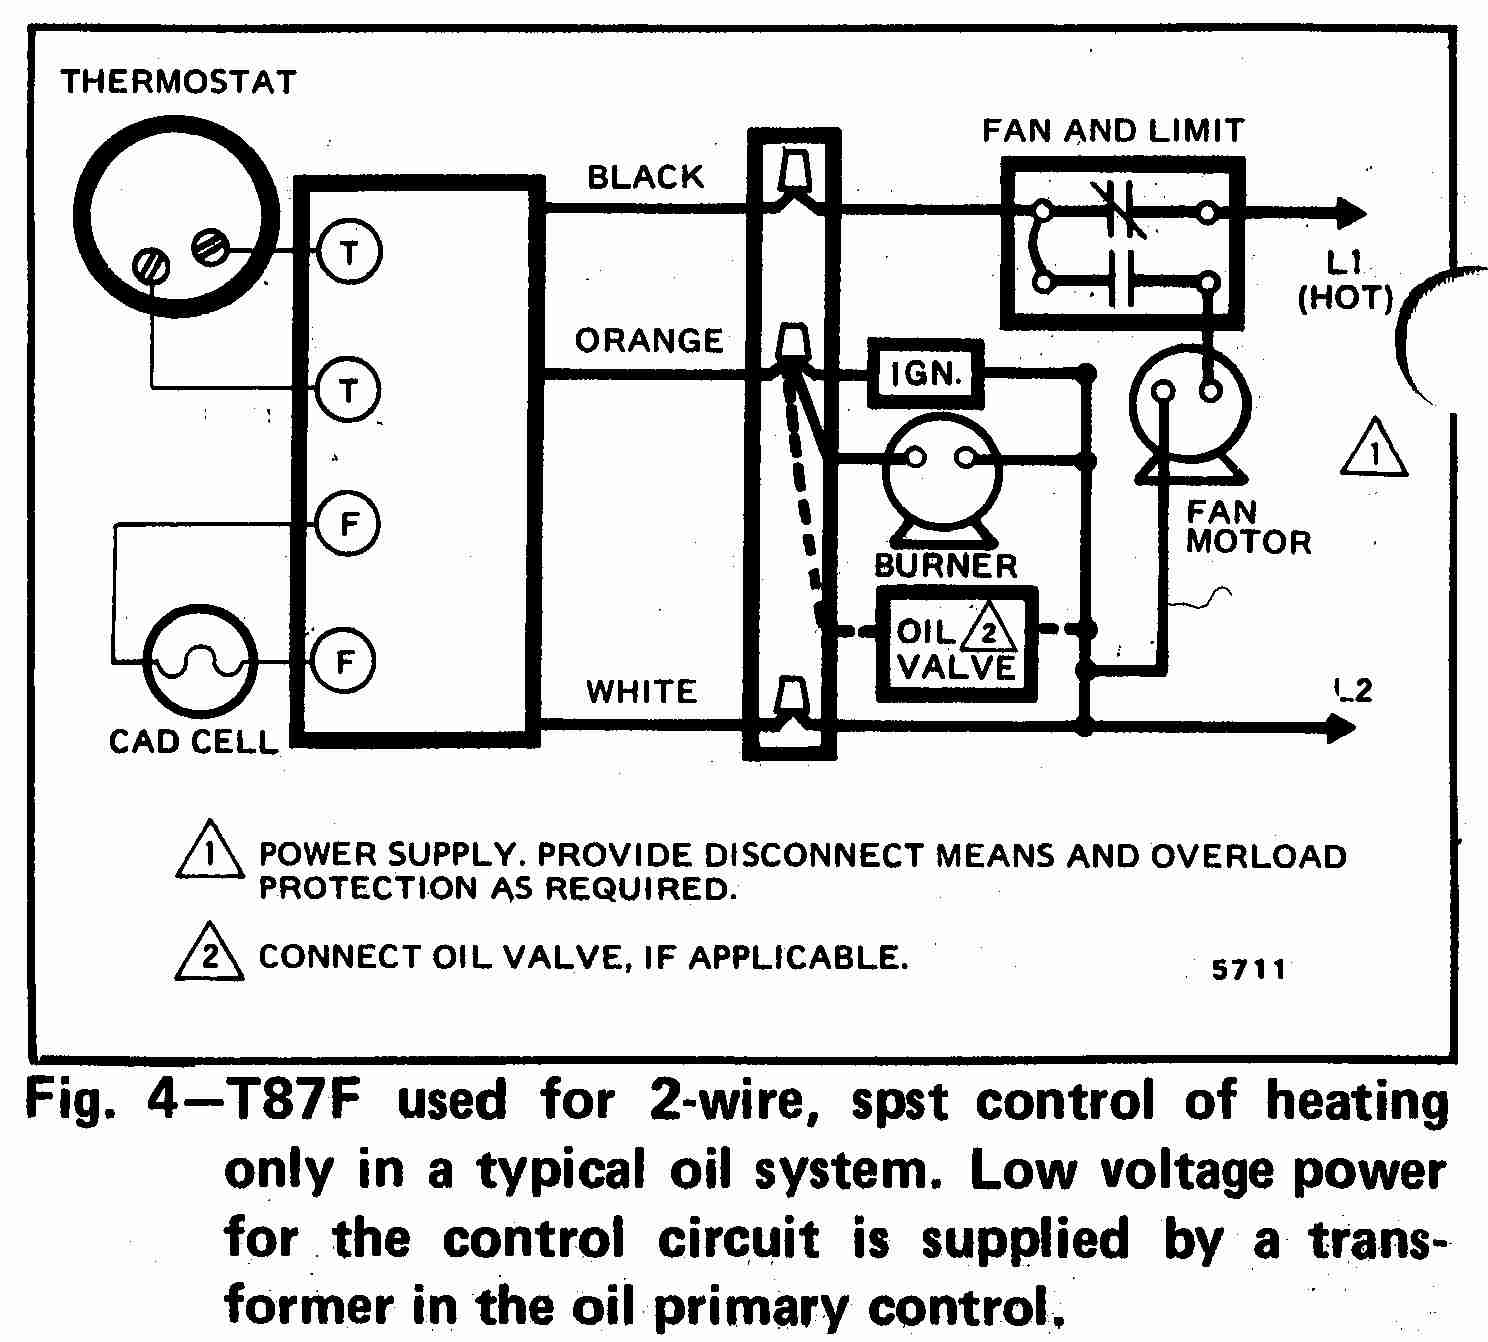 Room thermostat wiring diagrams for hvac systems honeywell t87f thermostat wiring diagram for 2 wire spst control of heating only in swarovskicordoba Gallery